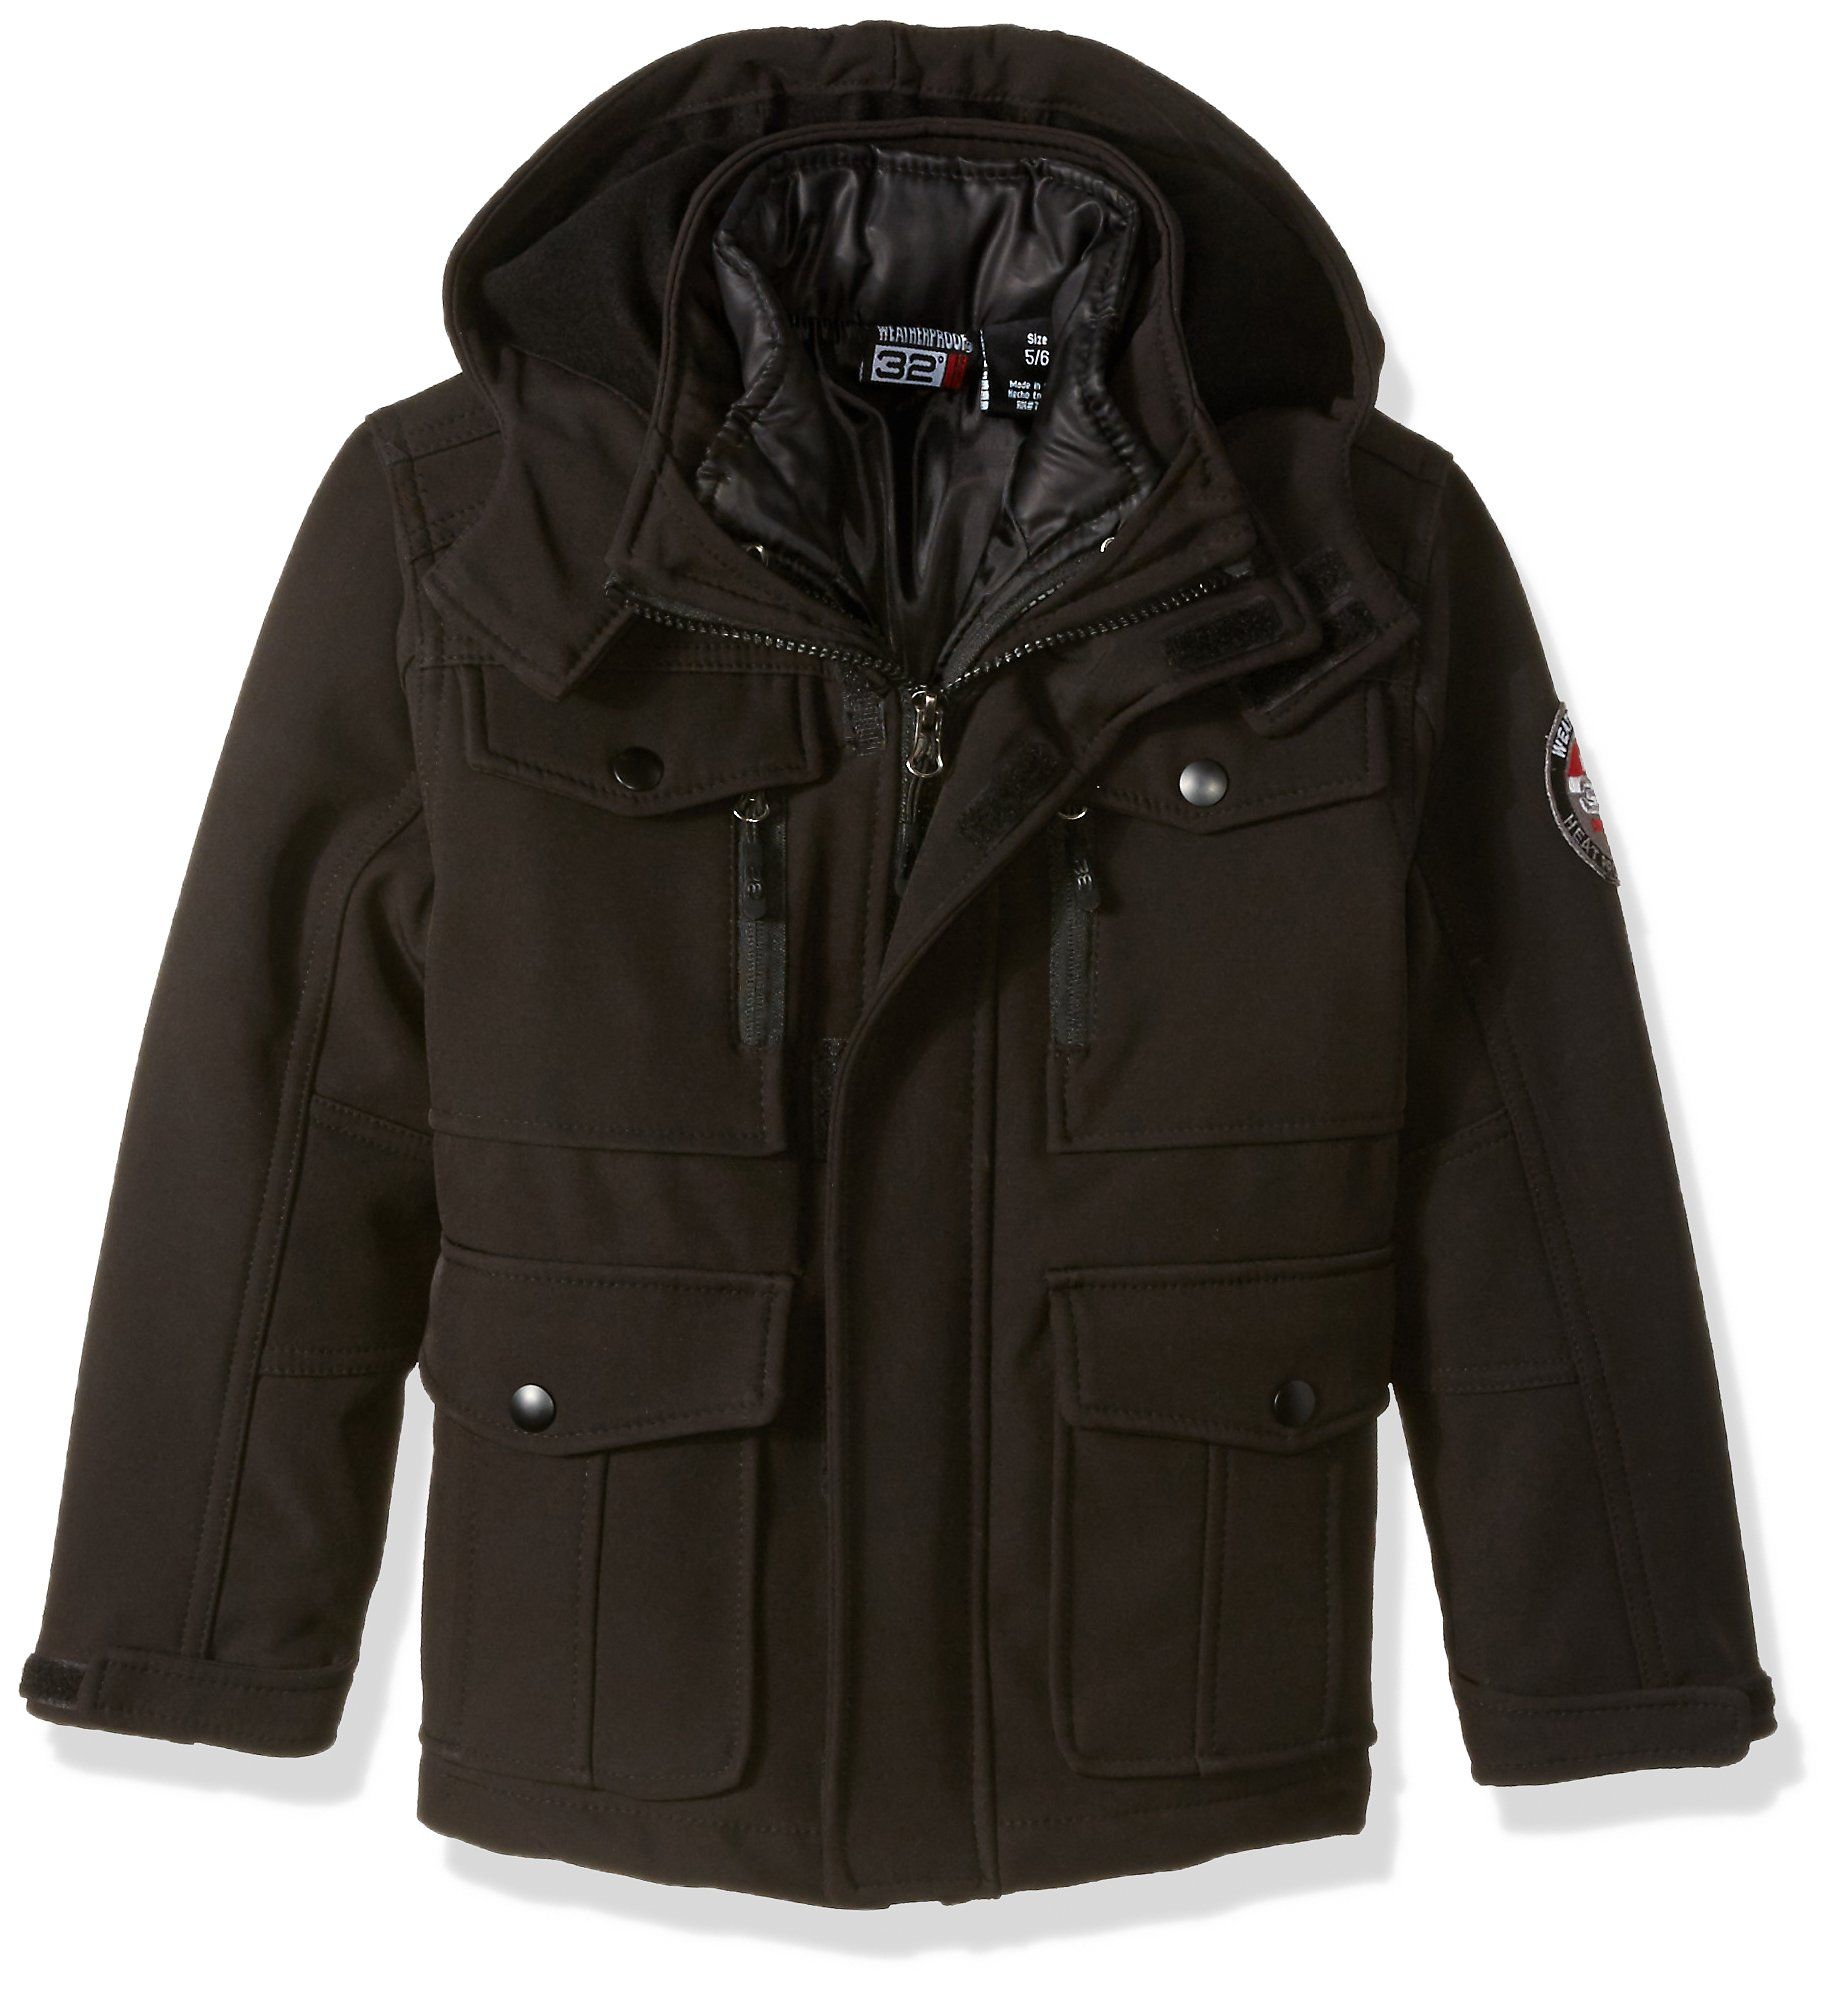 Weatherproof 32 Degrees Little Boys Outerwear Jacket More Styles Available Systems Classic Black 5 6 Want To Know Mor Outerwear Jackets Boy Outerwear Jackets [ 1993 x 1837 Pixel ]